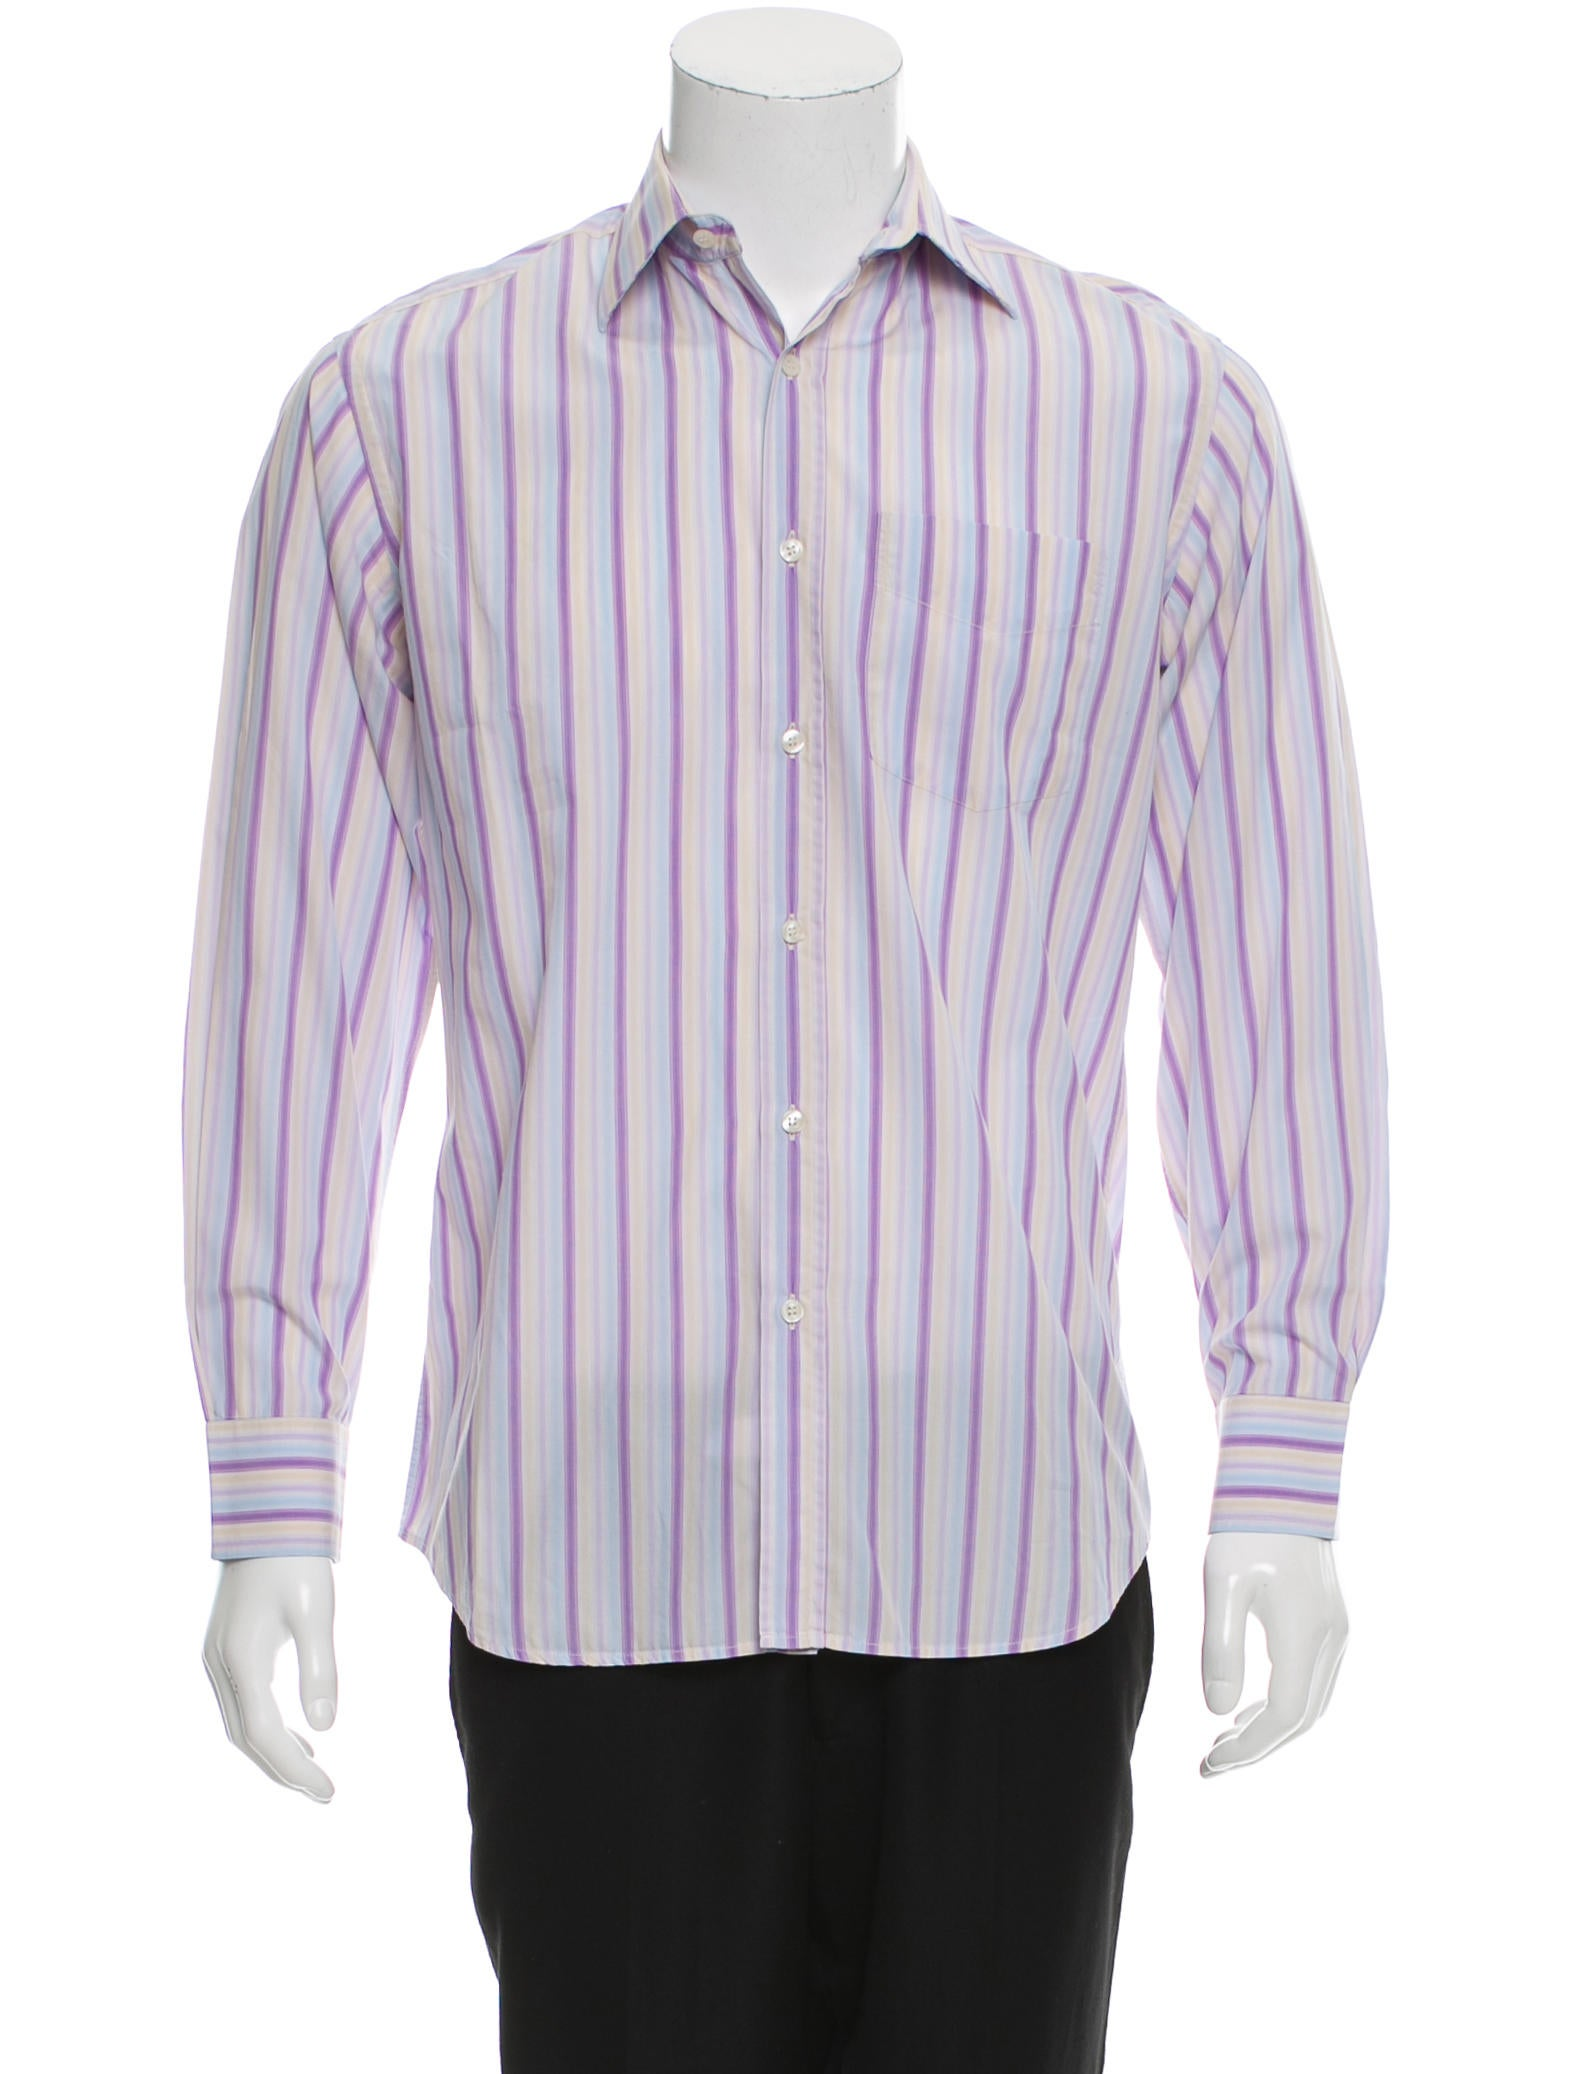 Paul smith striped button up shirt clothing wps23743 for Striped button up shirt mens